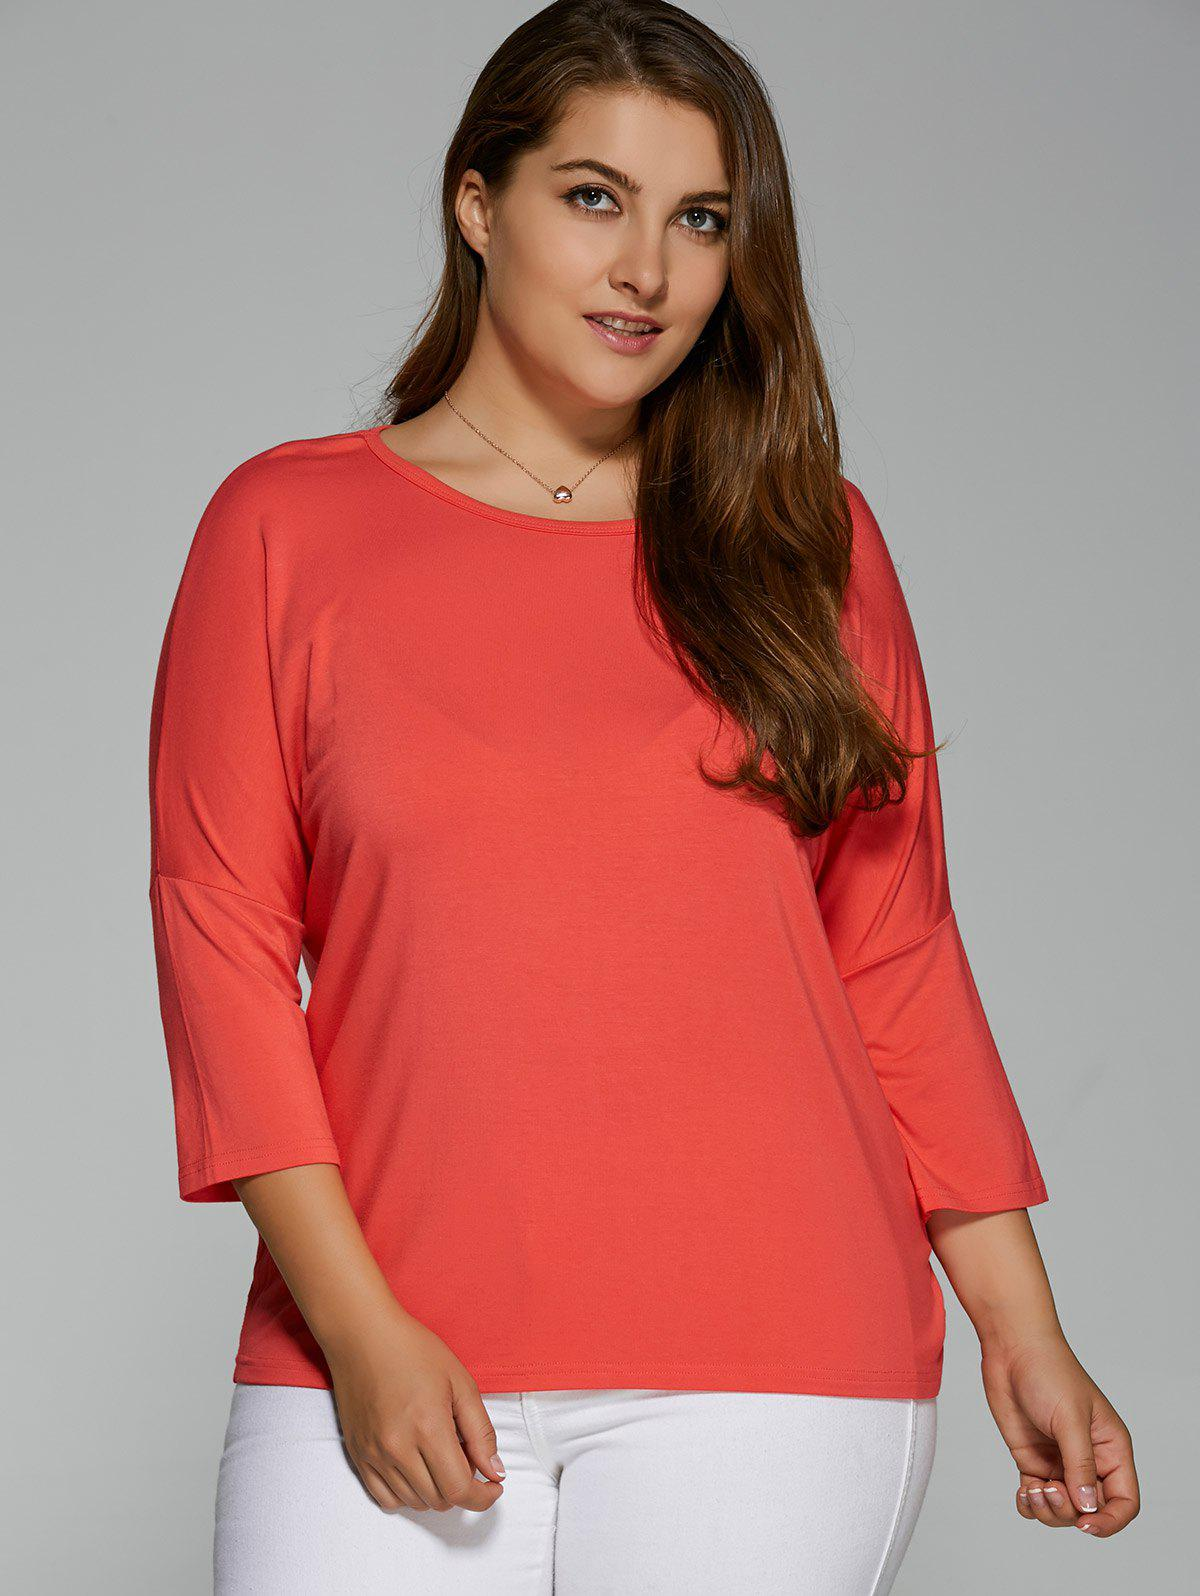 Plus Size Batwing Sleeve High Low T-Shirt sobredosis de soda buenos aires